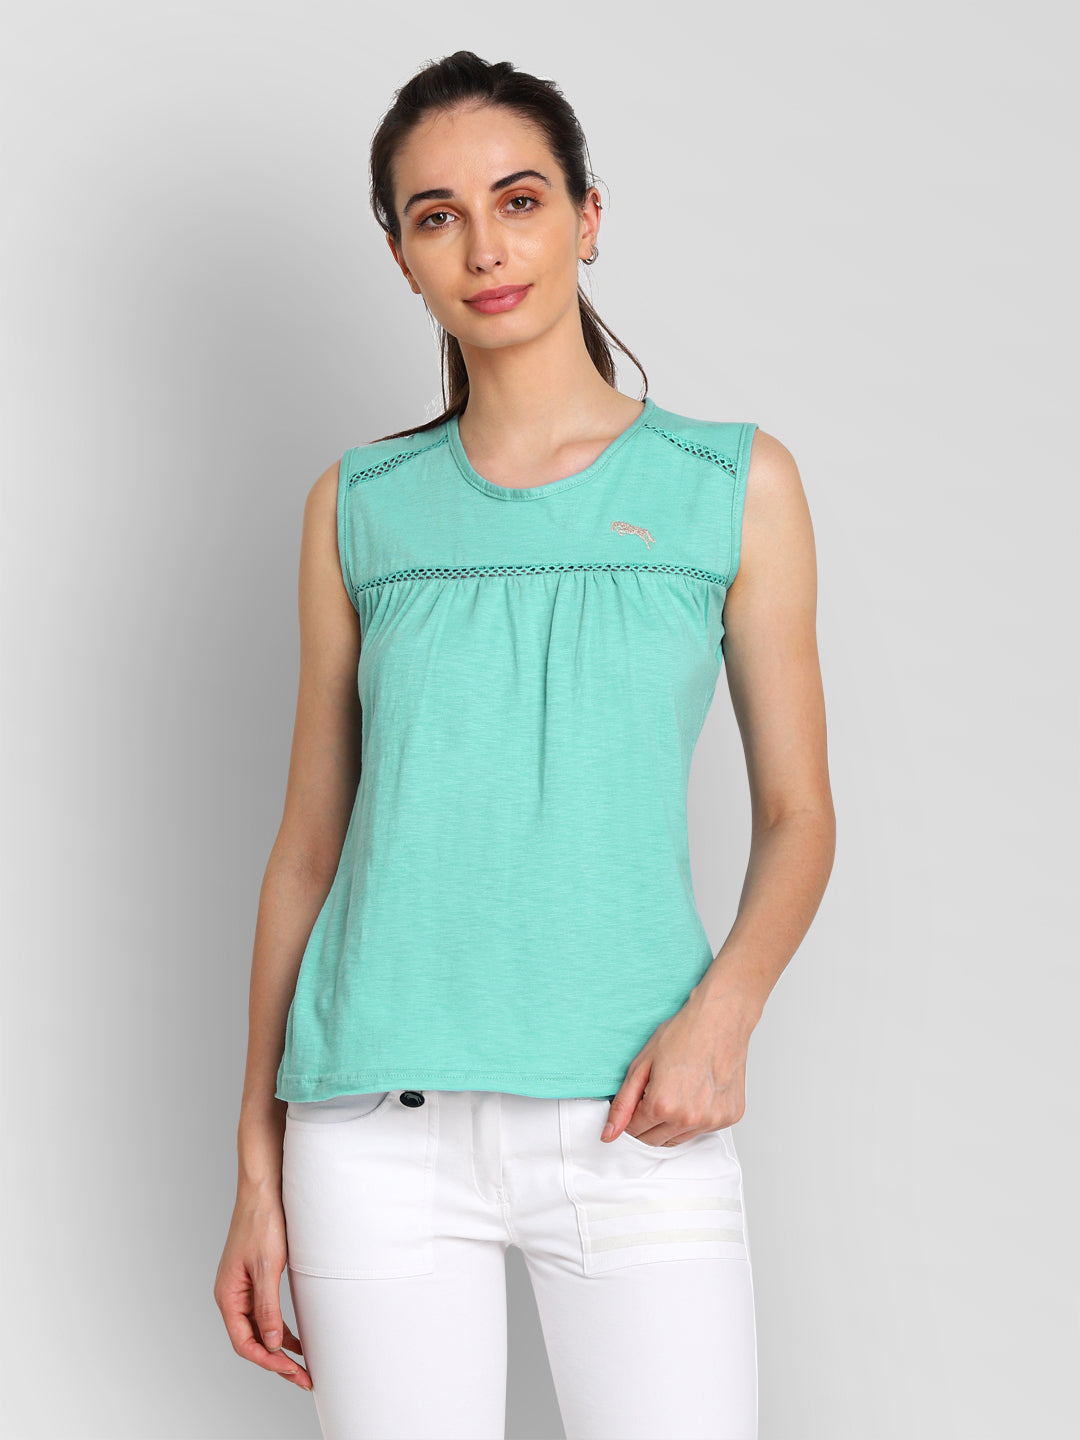 JUMP USA Women Blue Solid Regular Top - JUMP USA